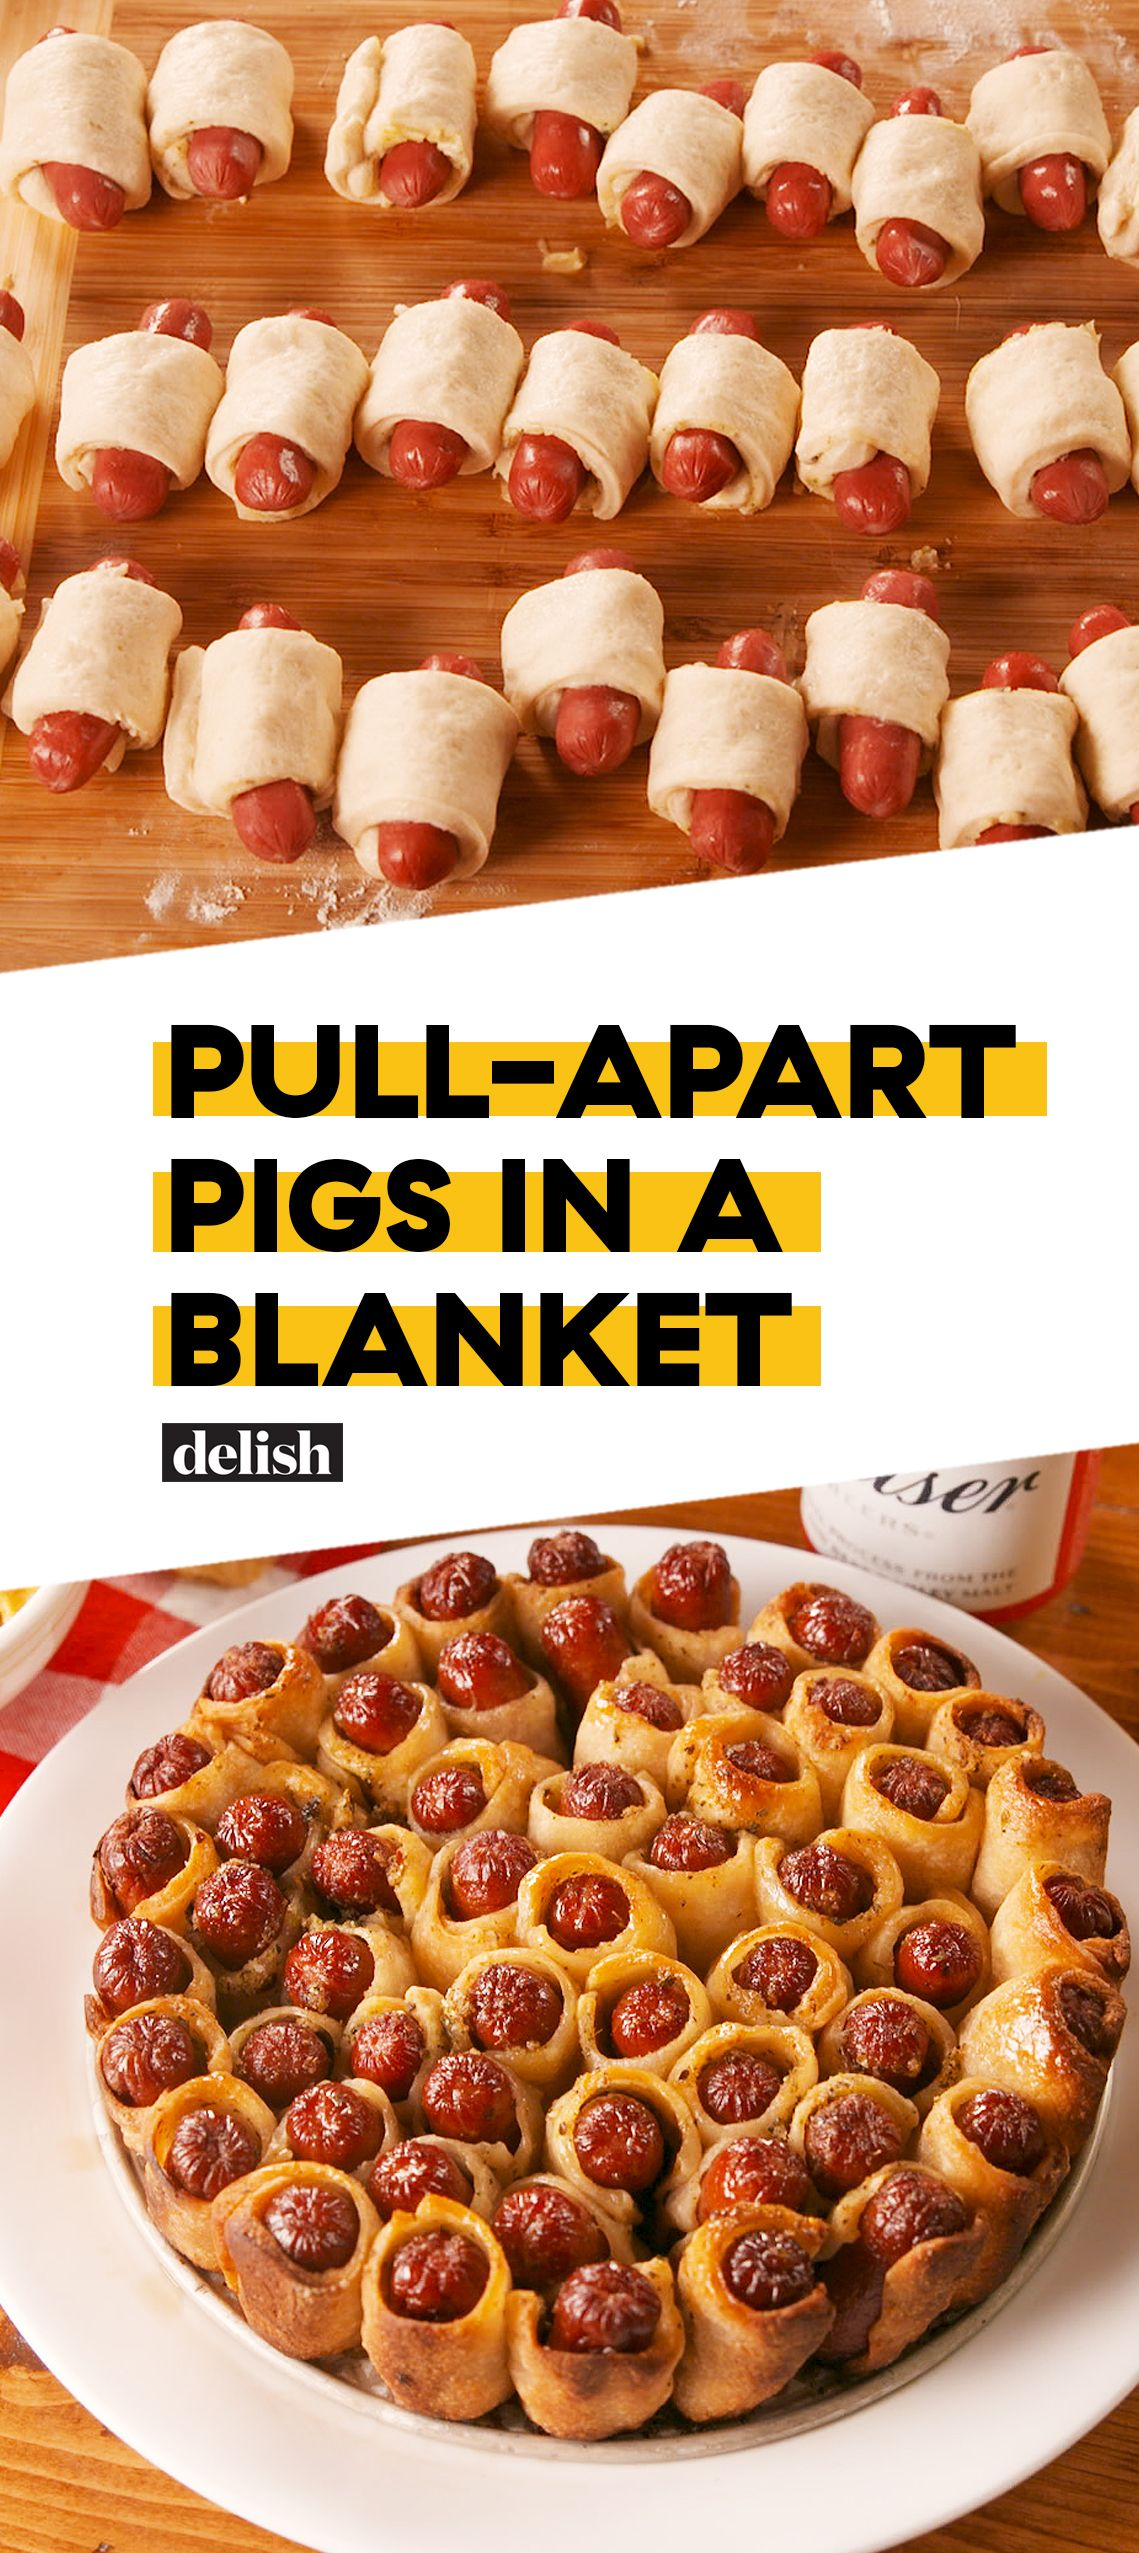 Pull-Apart Pigs In A Blanket #appetizersforparty